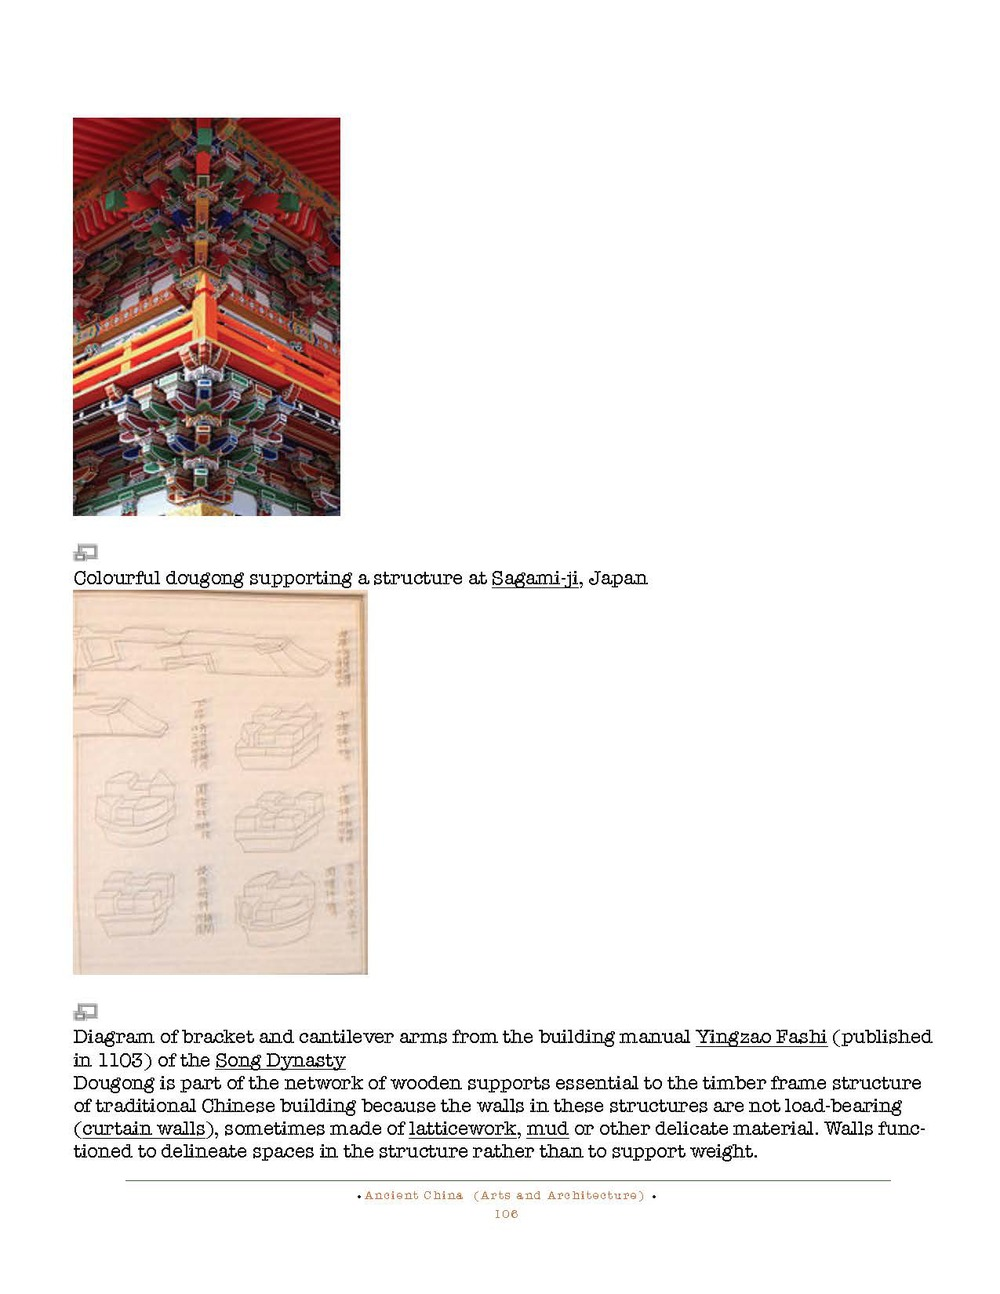 HOCE- Ancient China Notes_Page_106.jpg